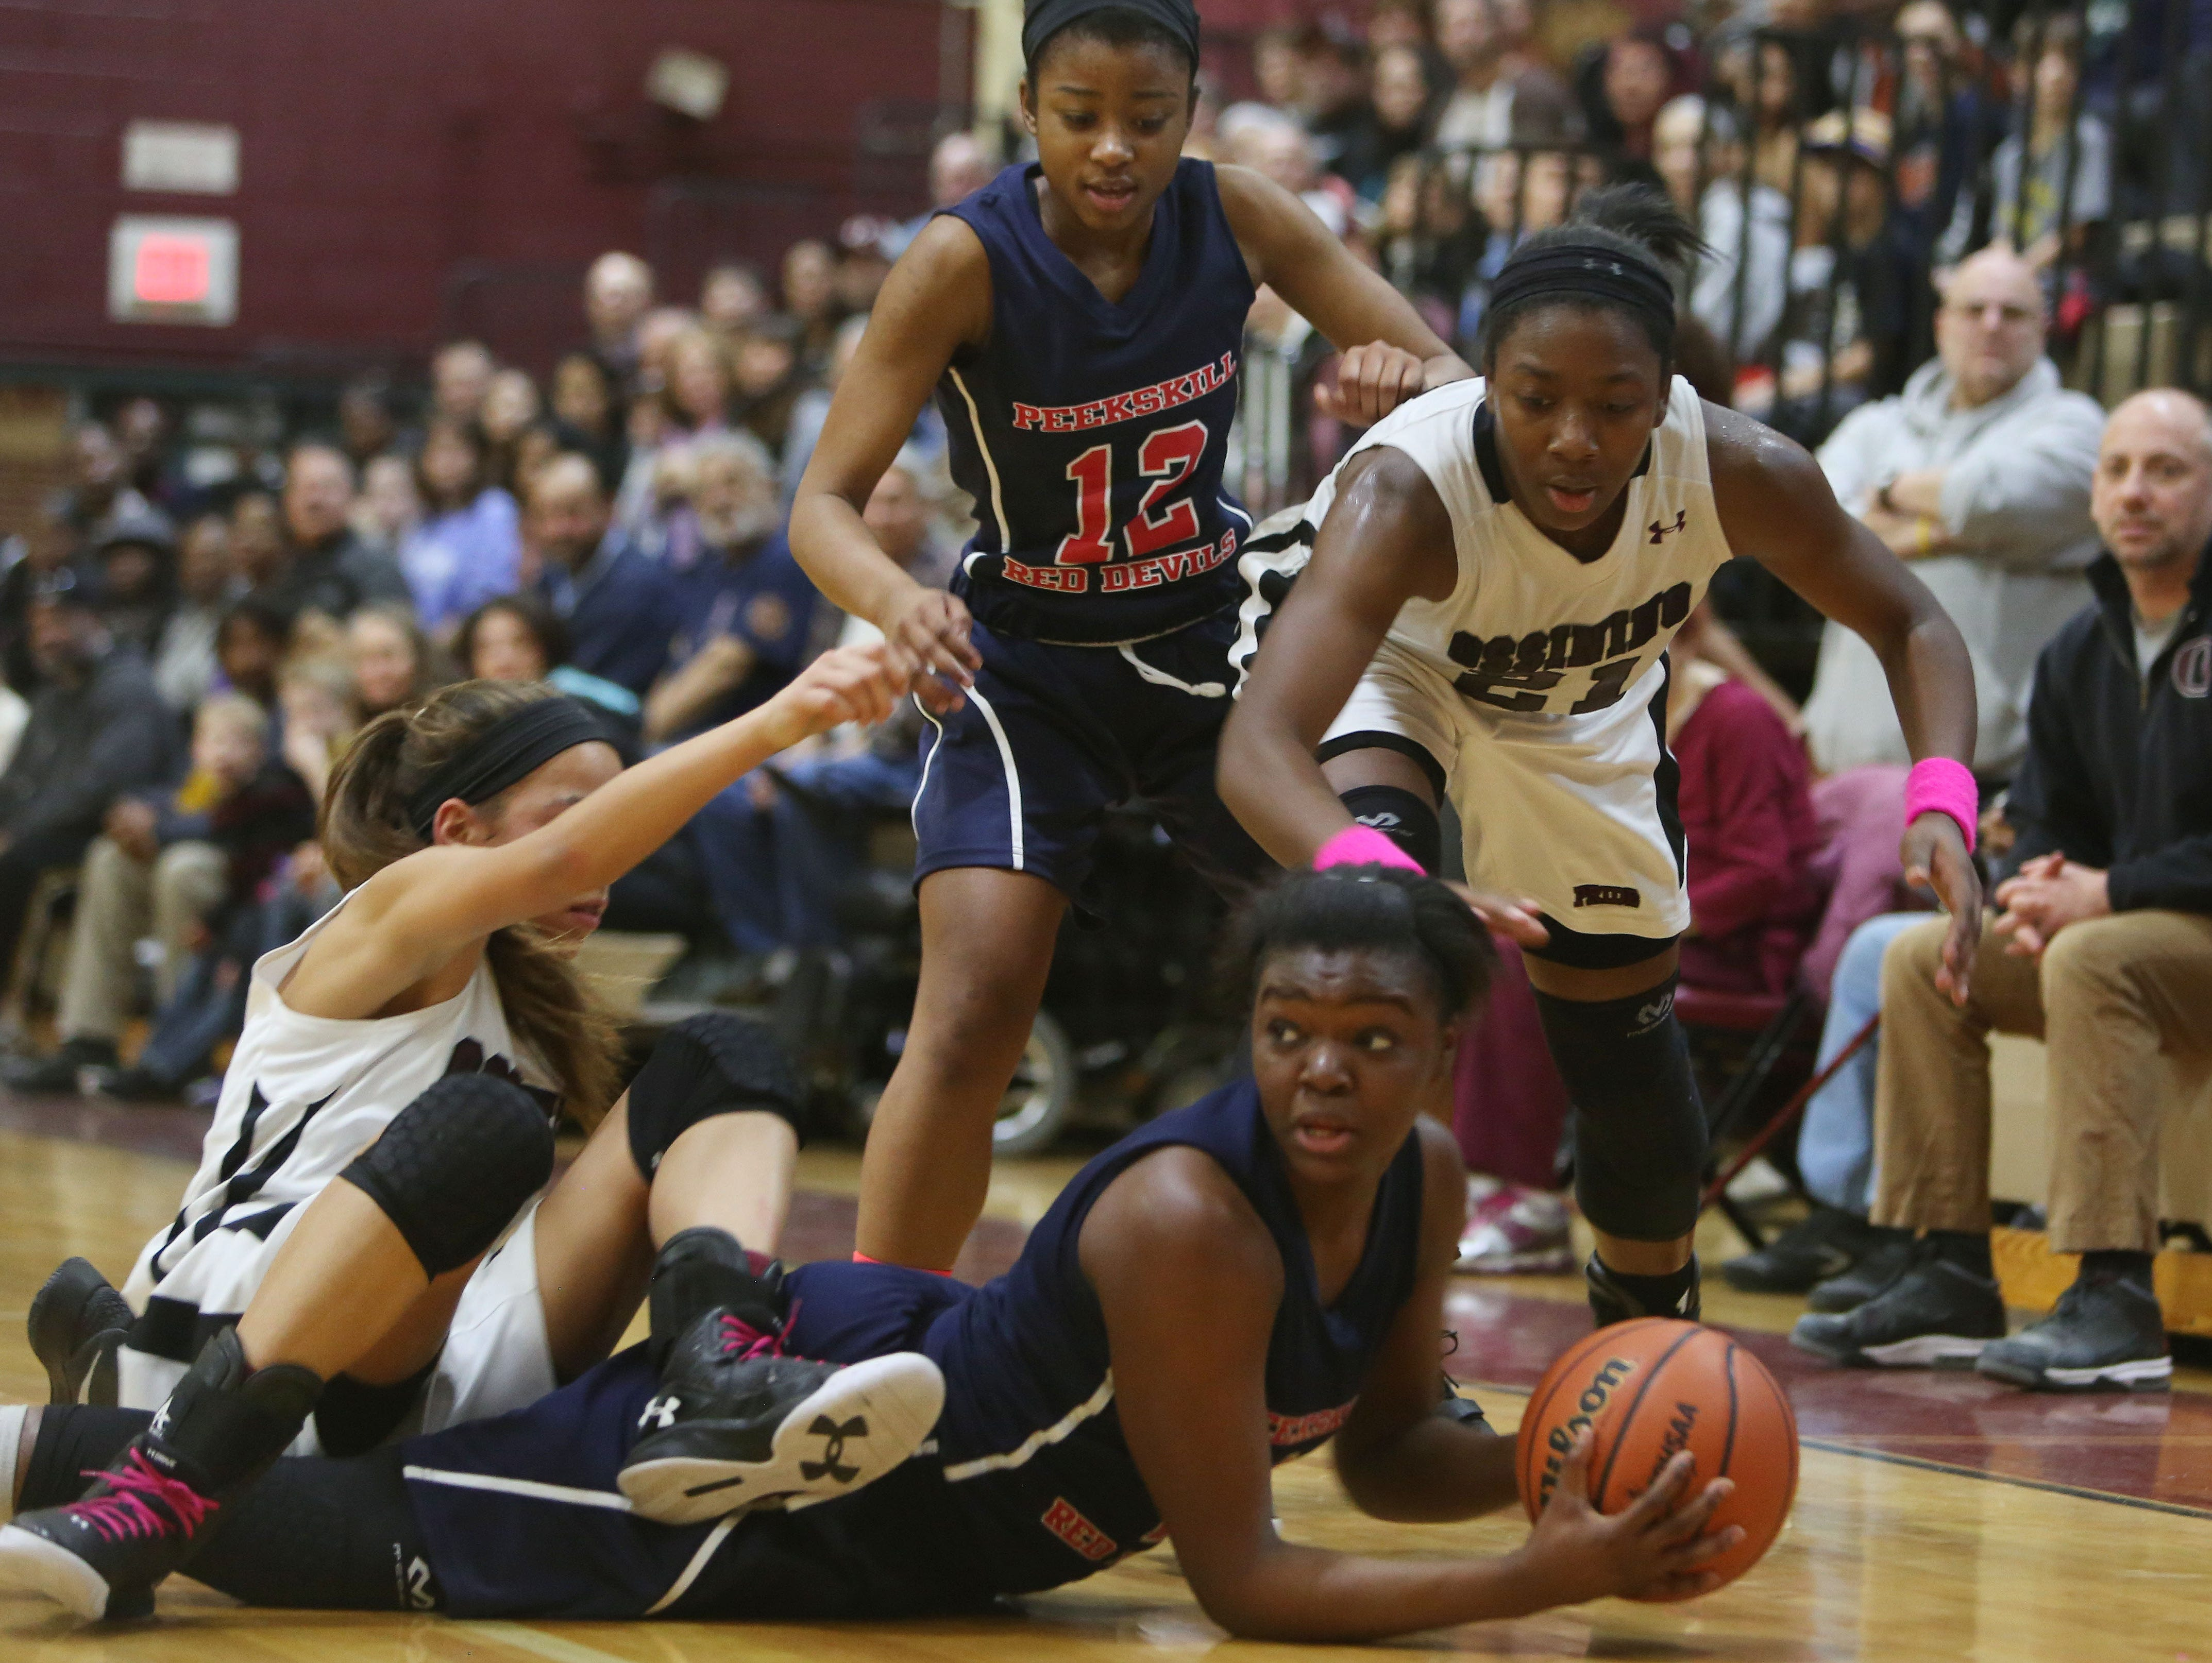 Peekskill's Lanay Rodney (1) looks for a teammate while getting pressure from Ossining's Jaida Strippoli (4) and Shadden Samuels (21) during girls basketball game at Ossining High School Feb. 2, 2016.